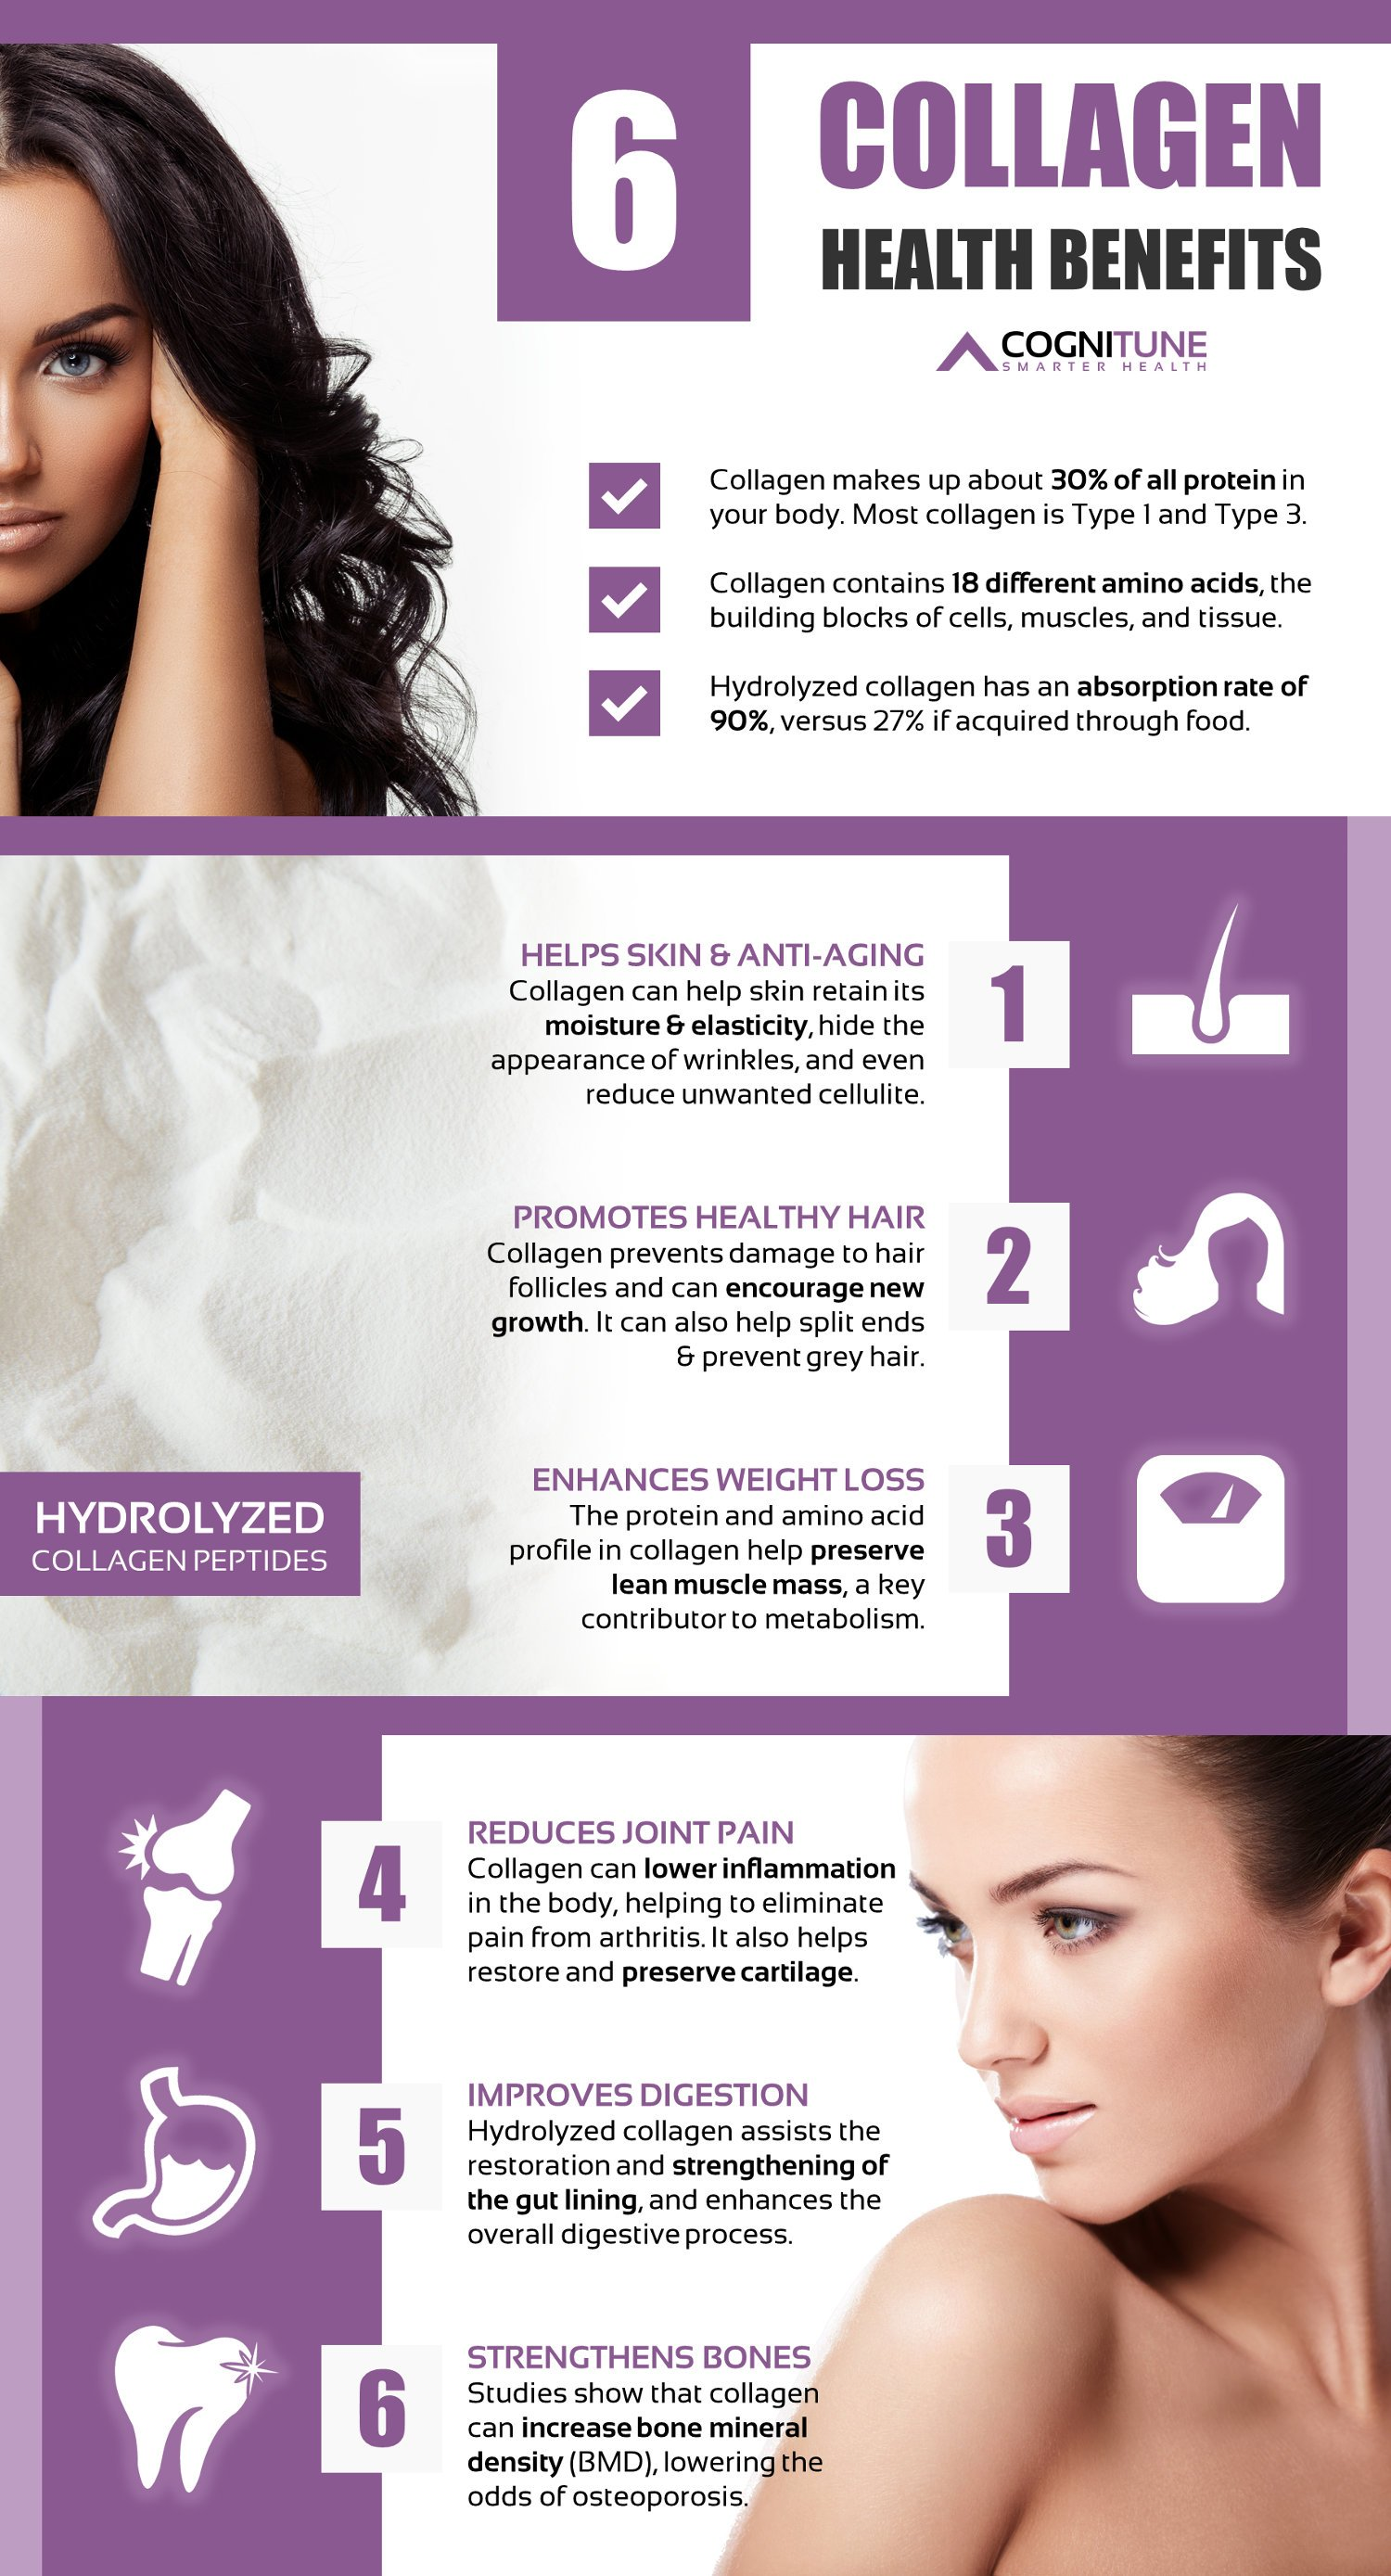 6 Collagen Protein Health Benefits Infographic